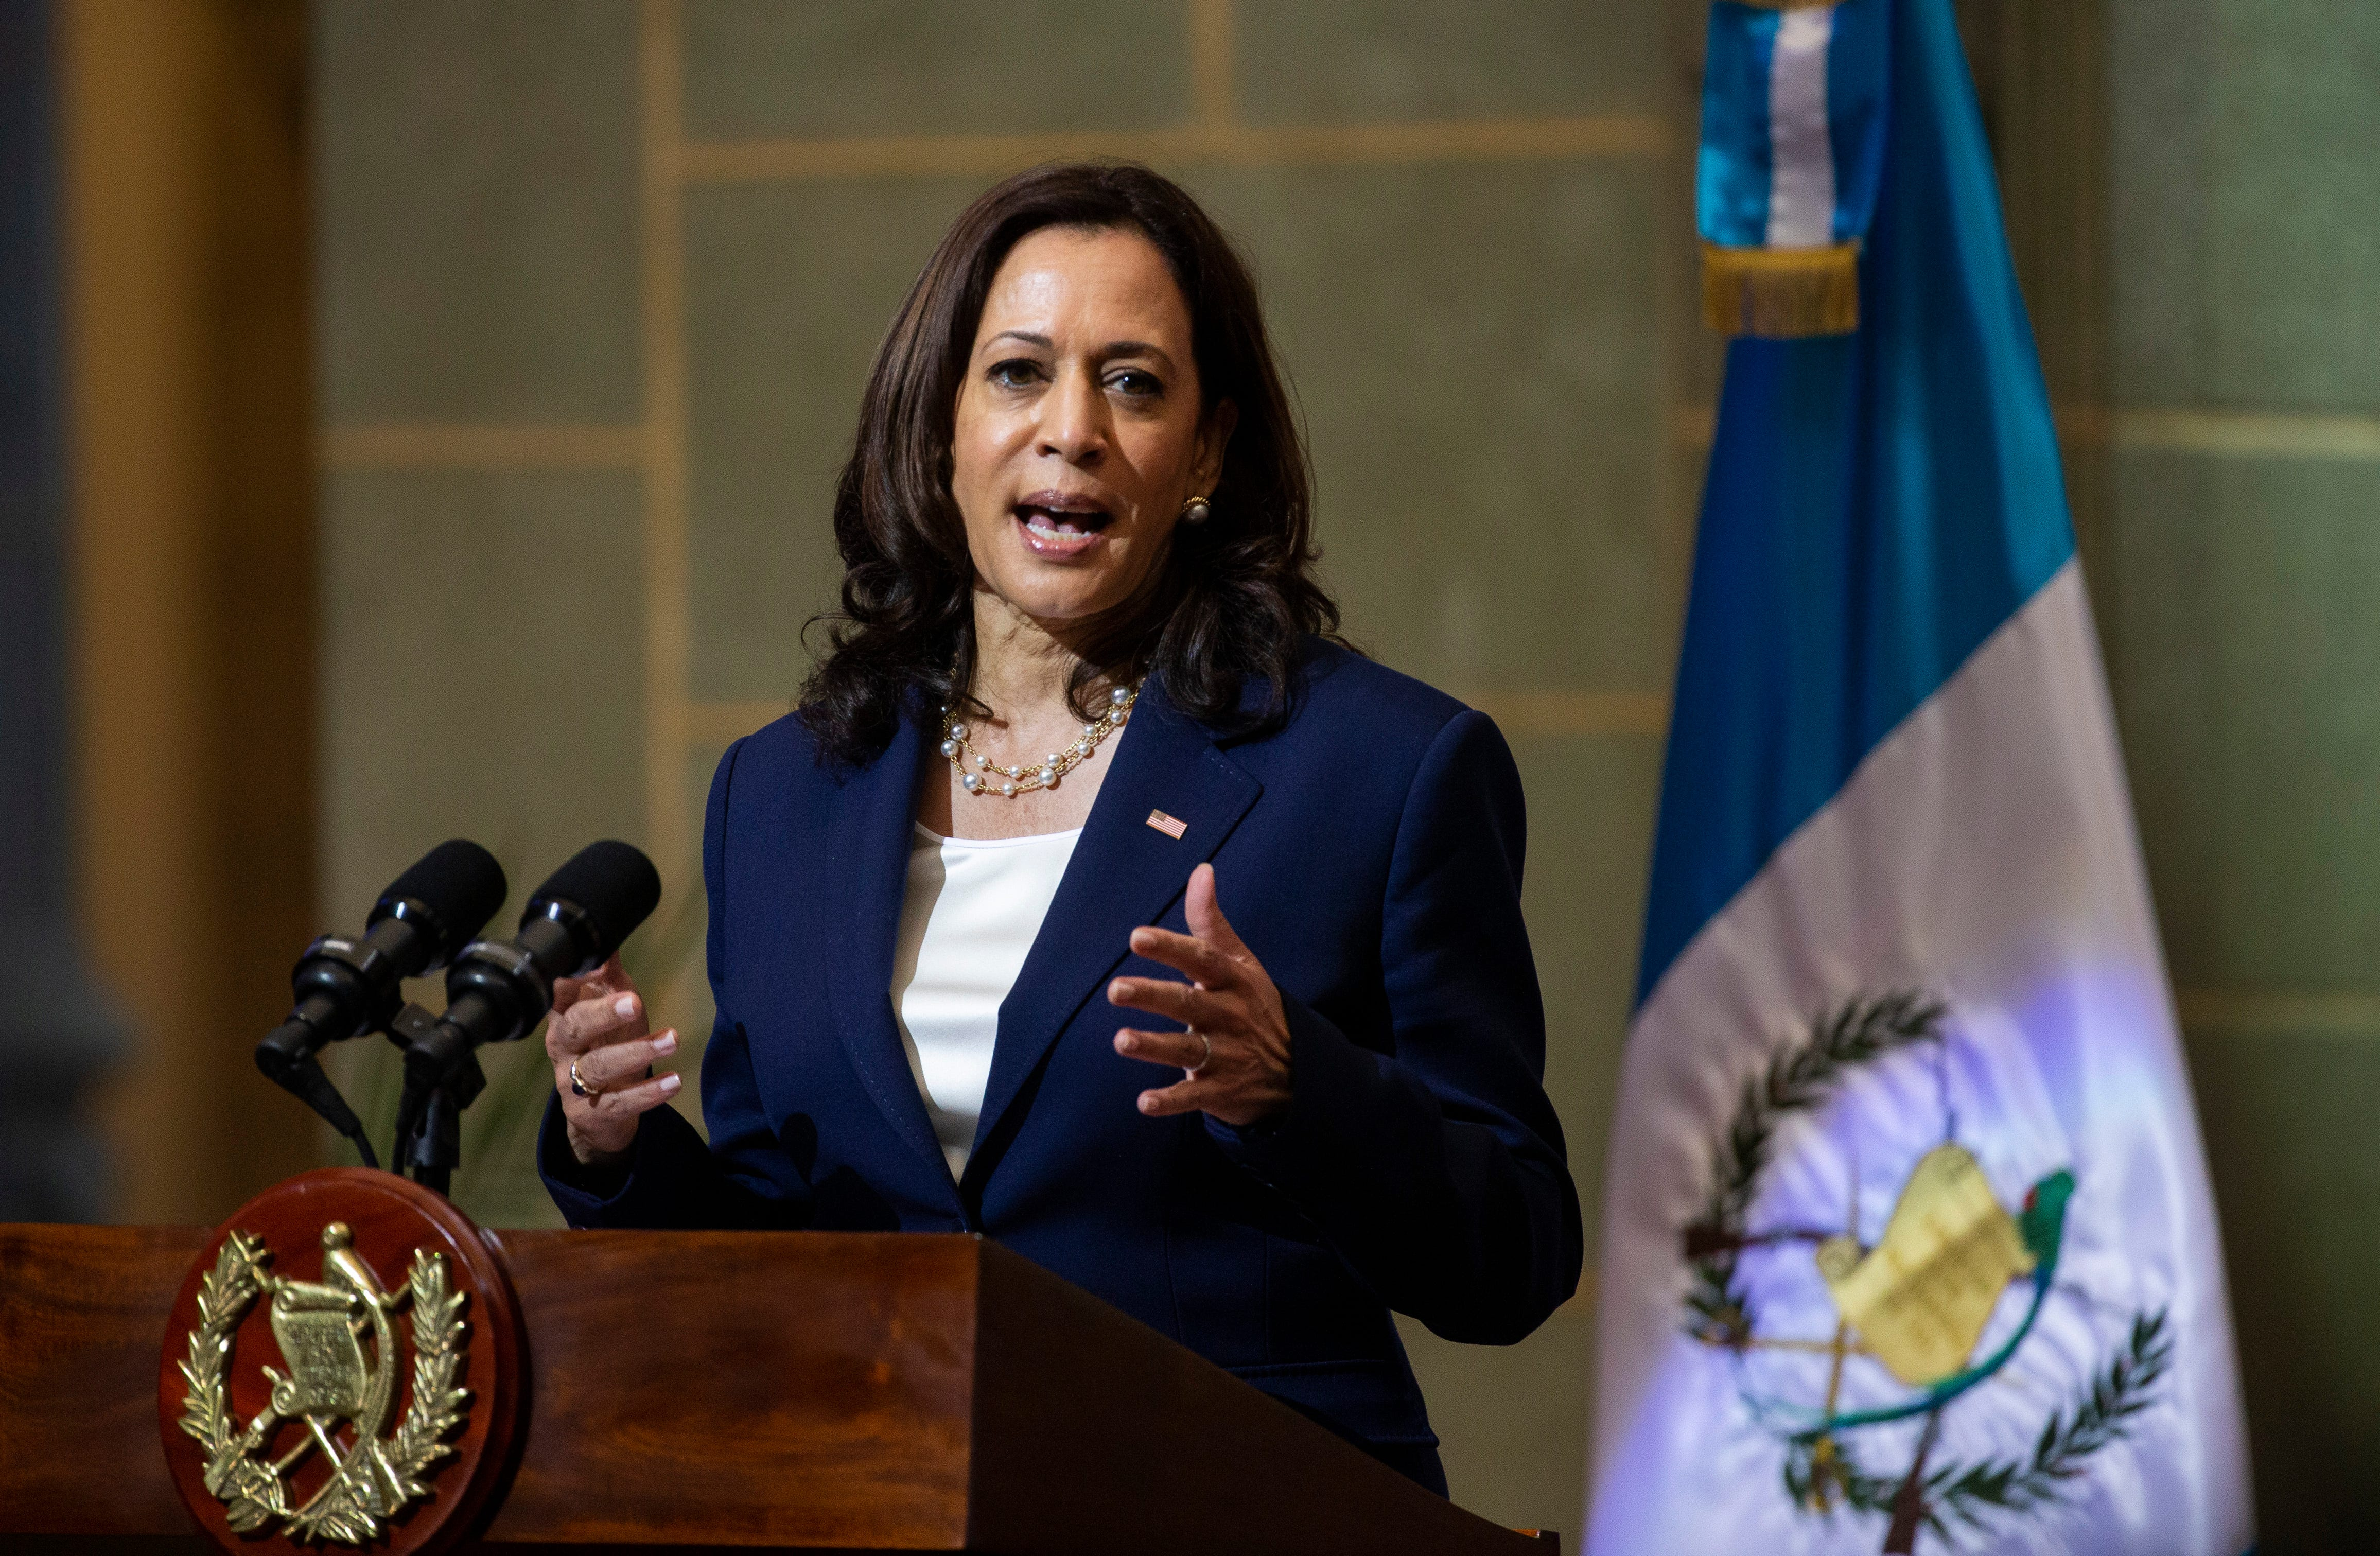 Vice President Kamala Harris, tasked with stemming migrant flow, will visit US-Mexico border Friday